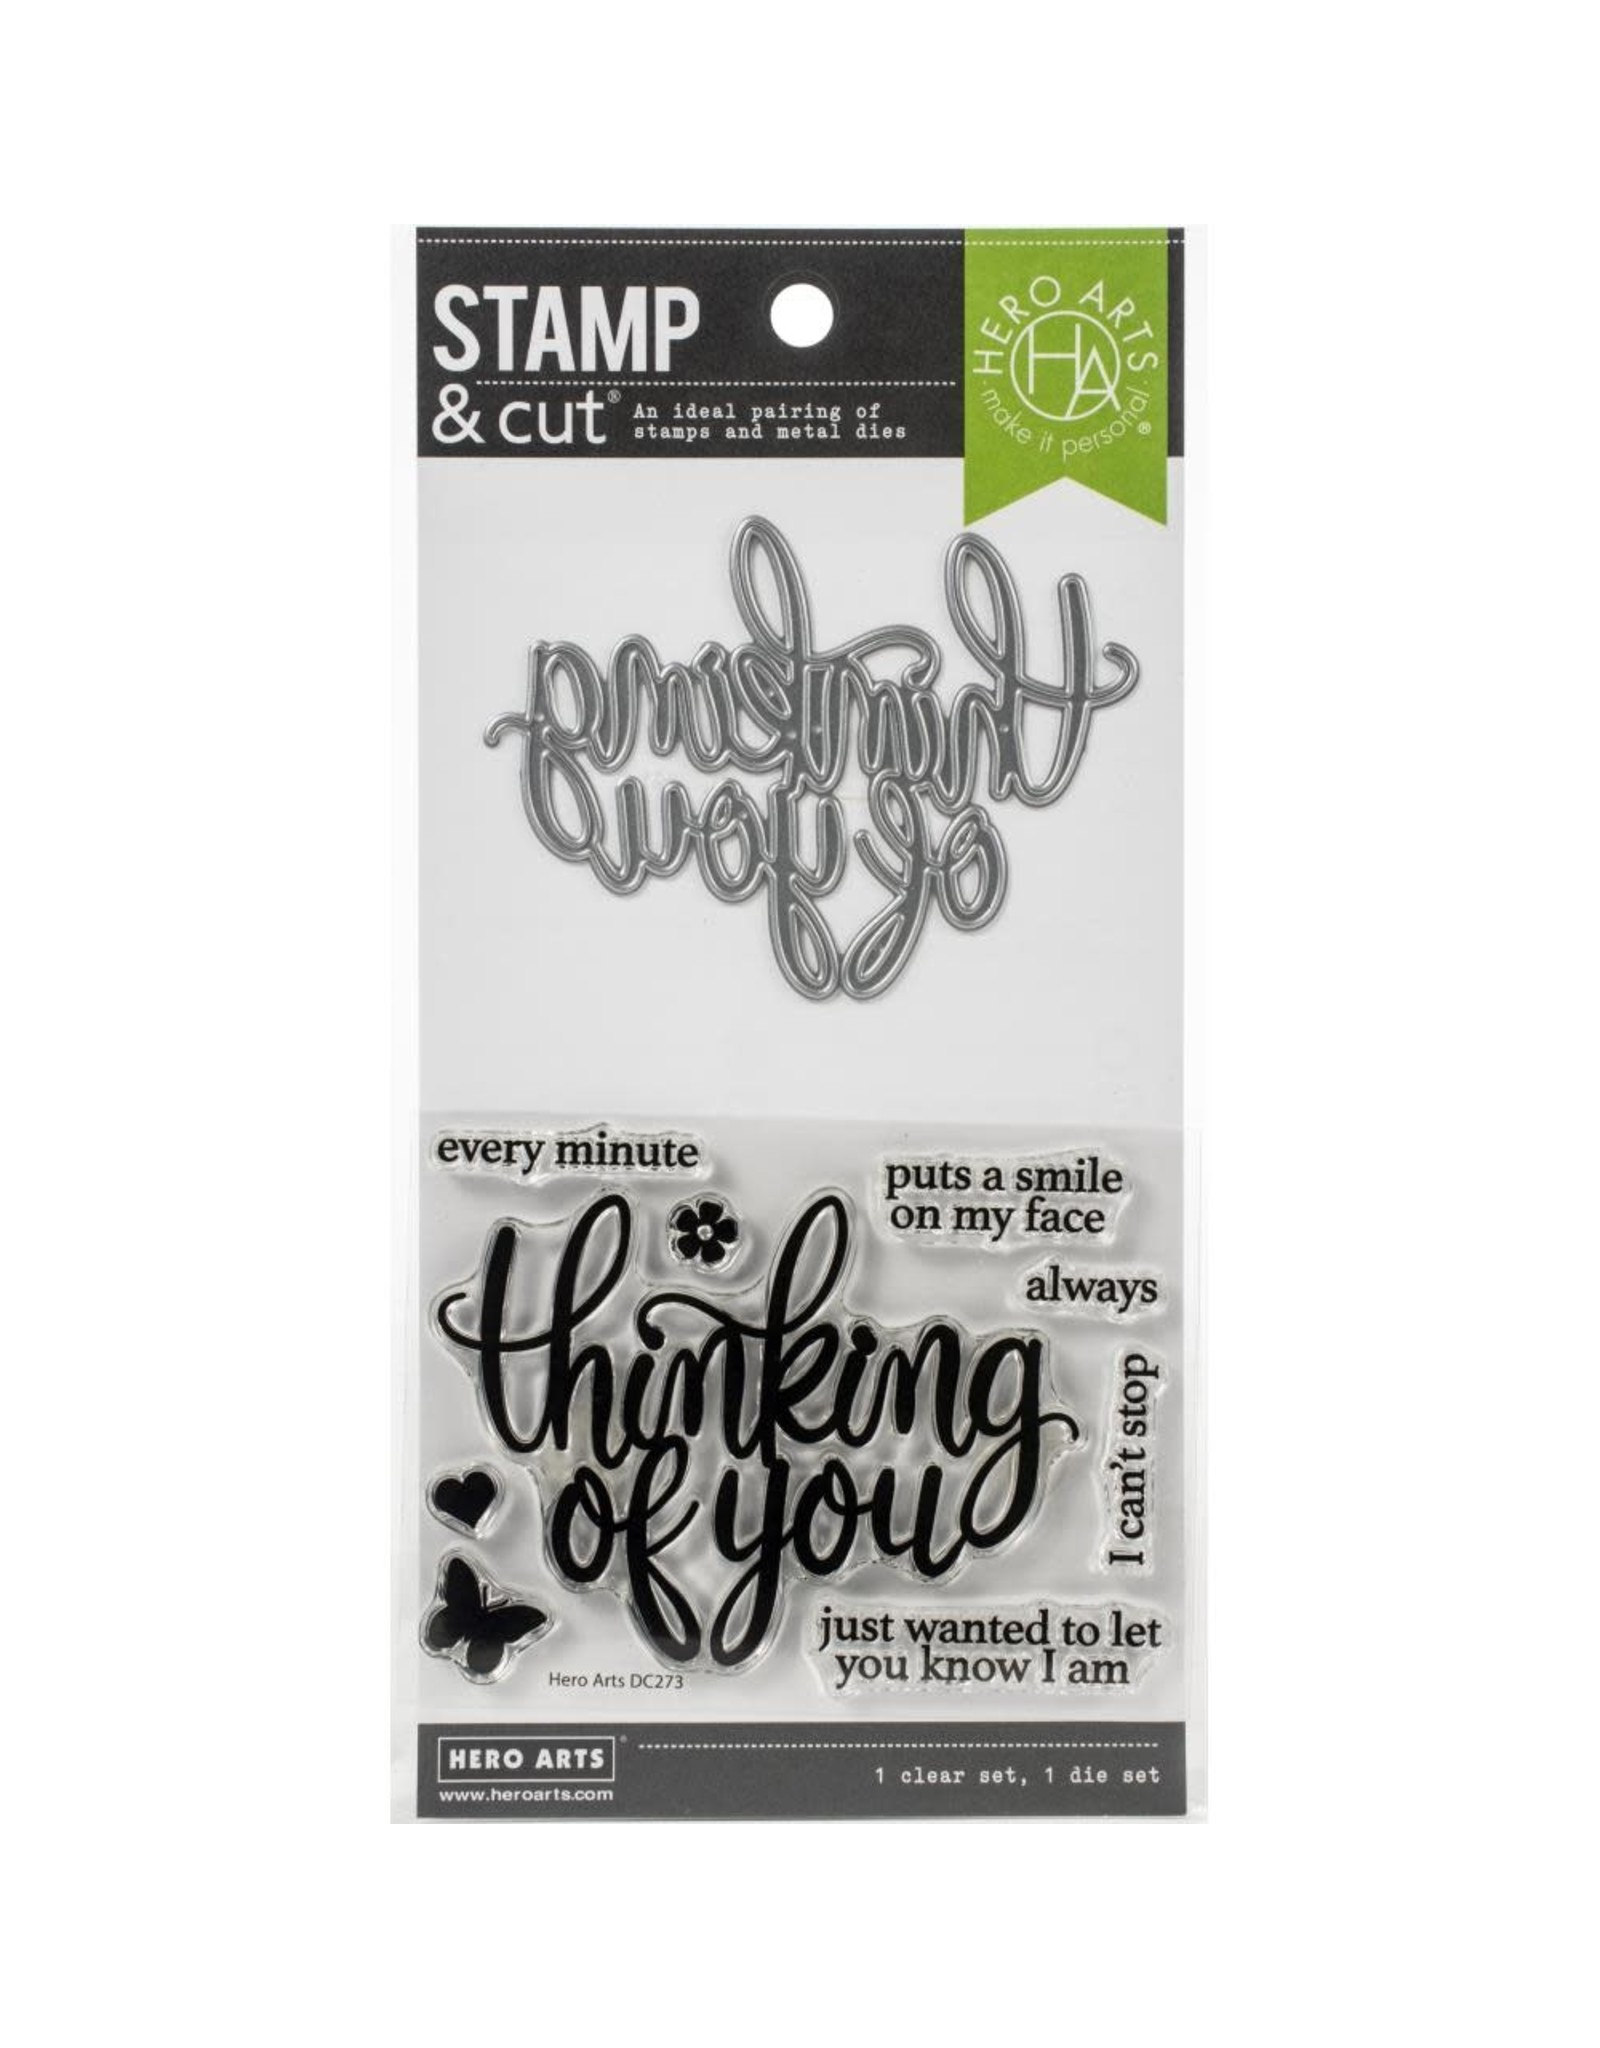 Hero Arts Thinking of You Stamp & Cut